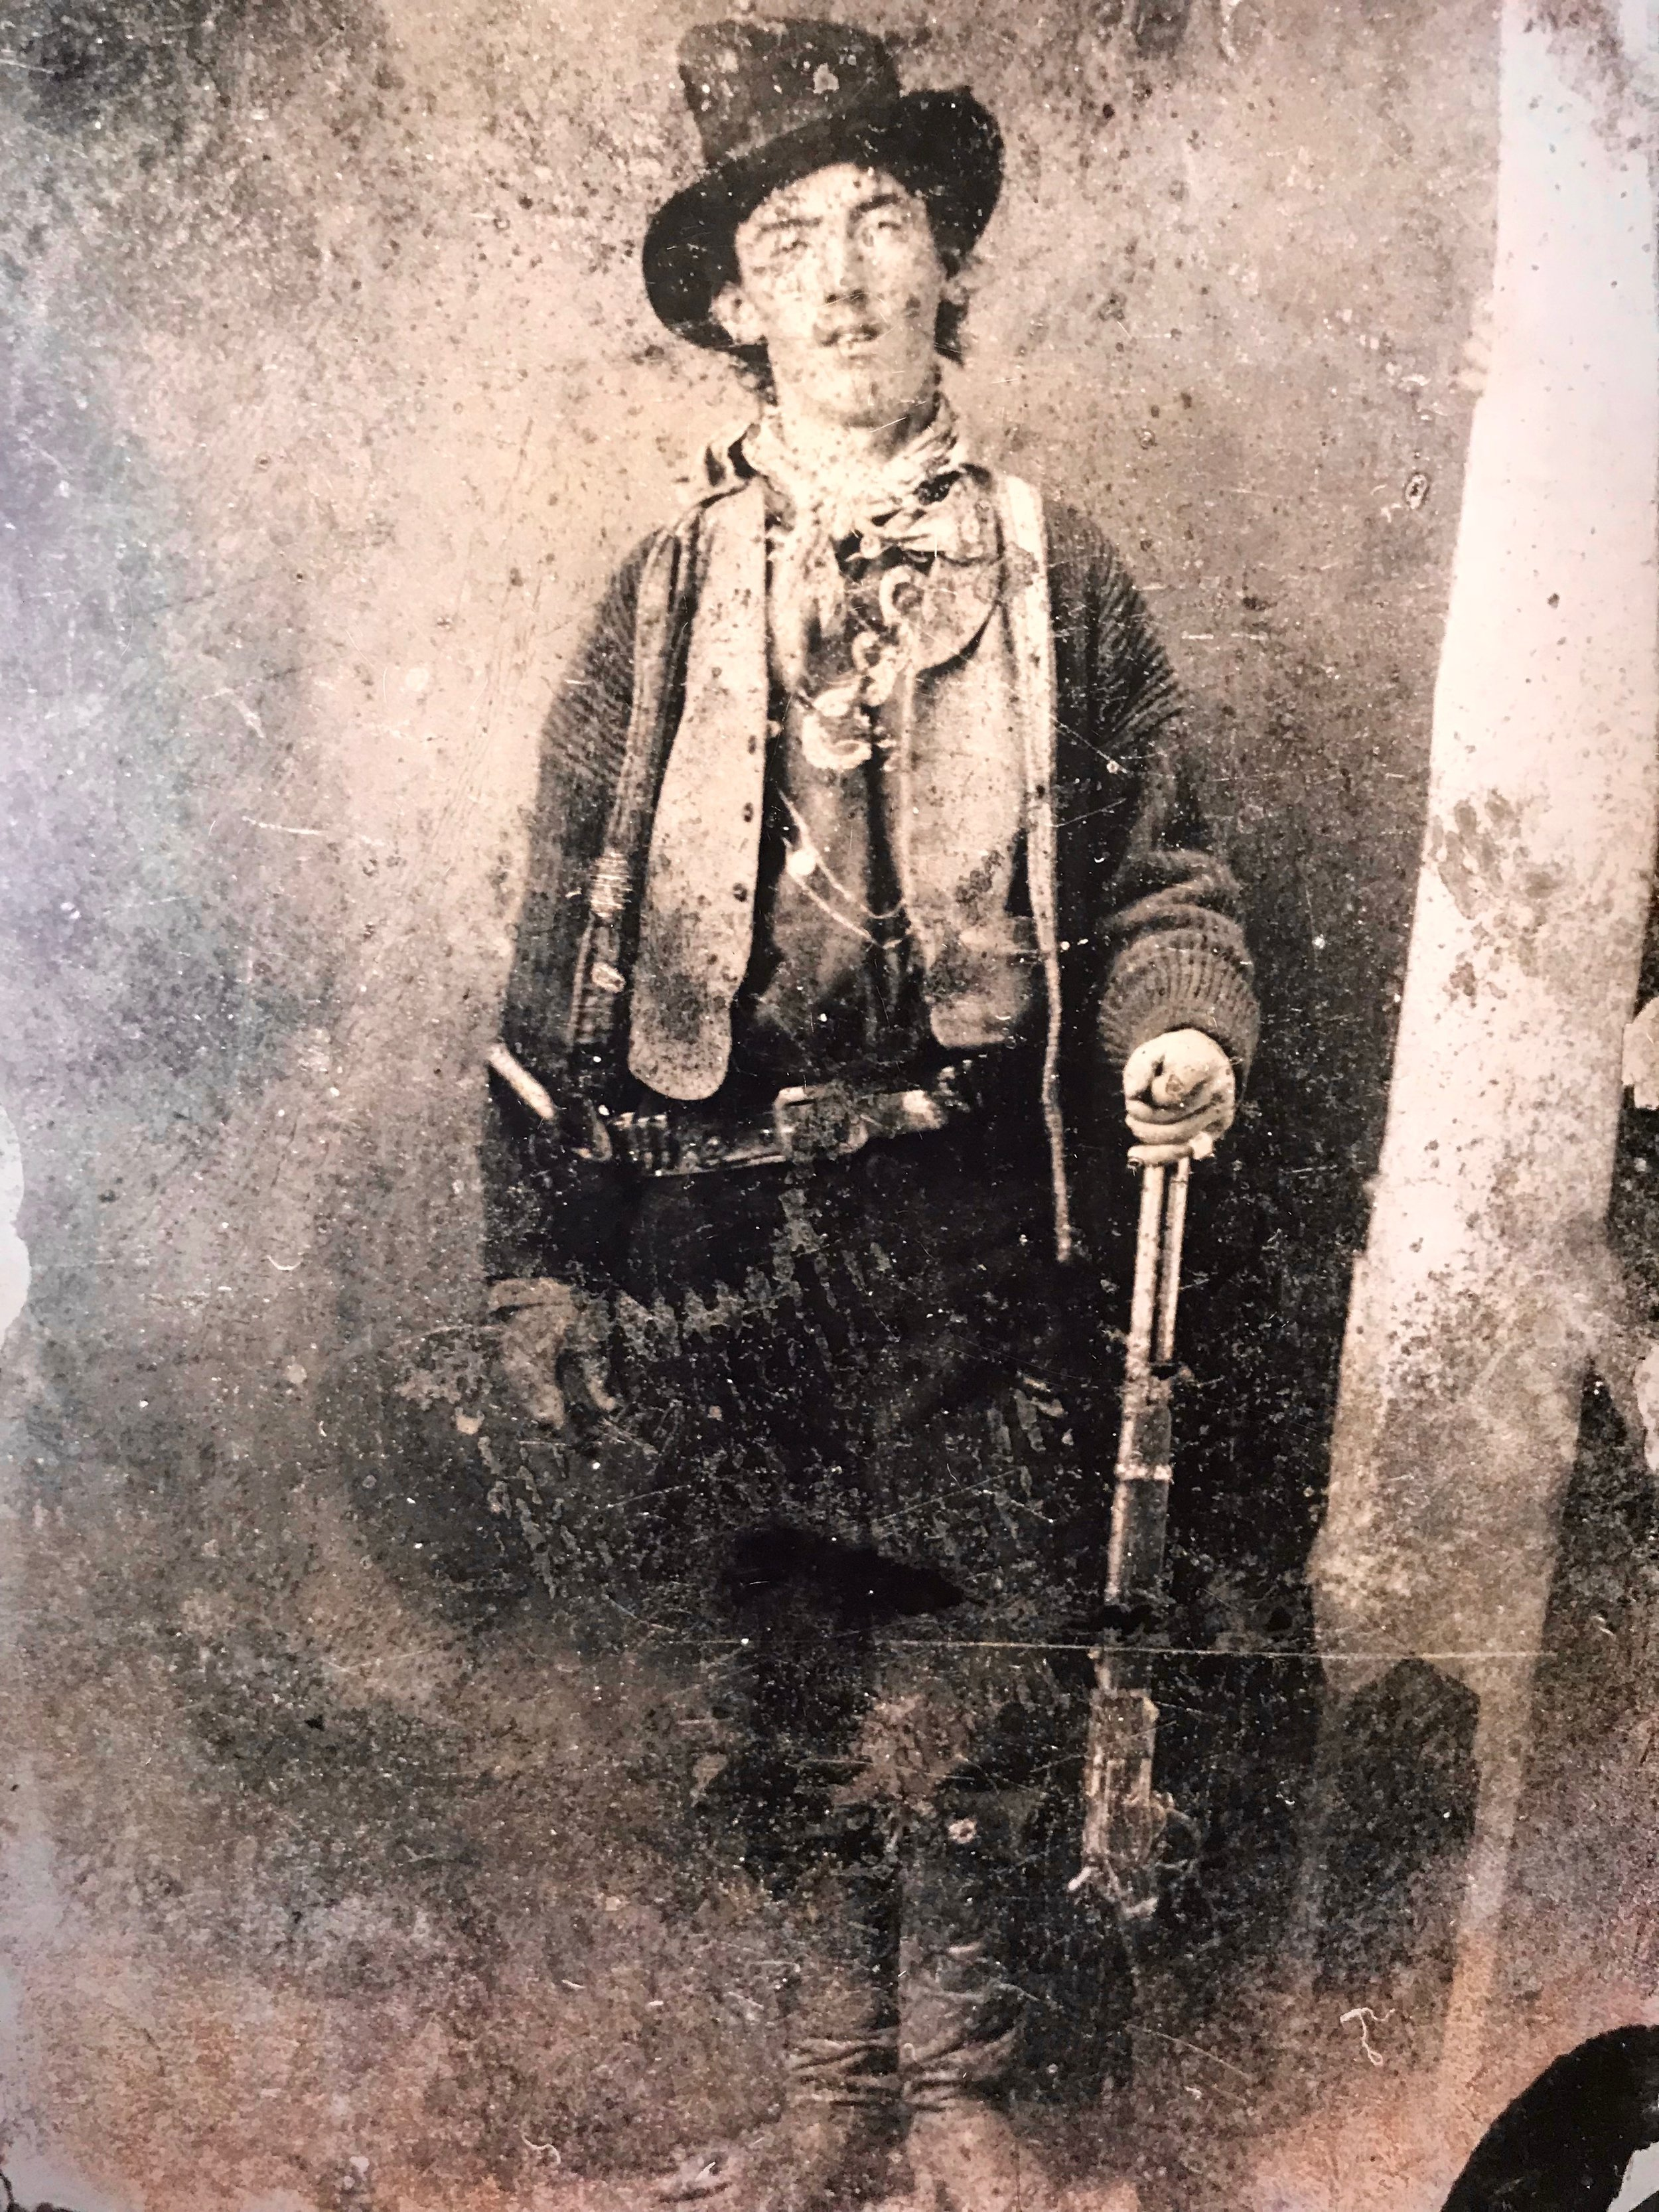 Billy the Kid in the 1870s, in the only known photo of him.